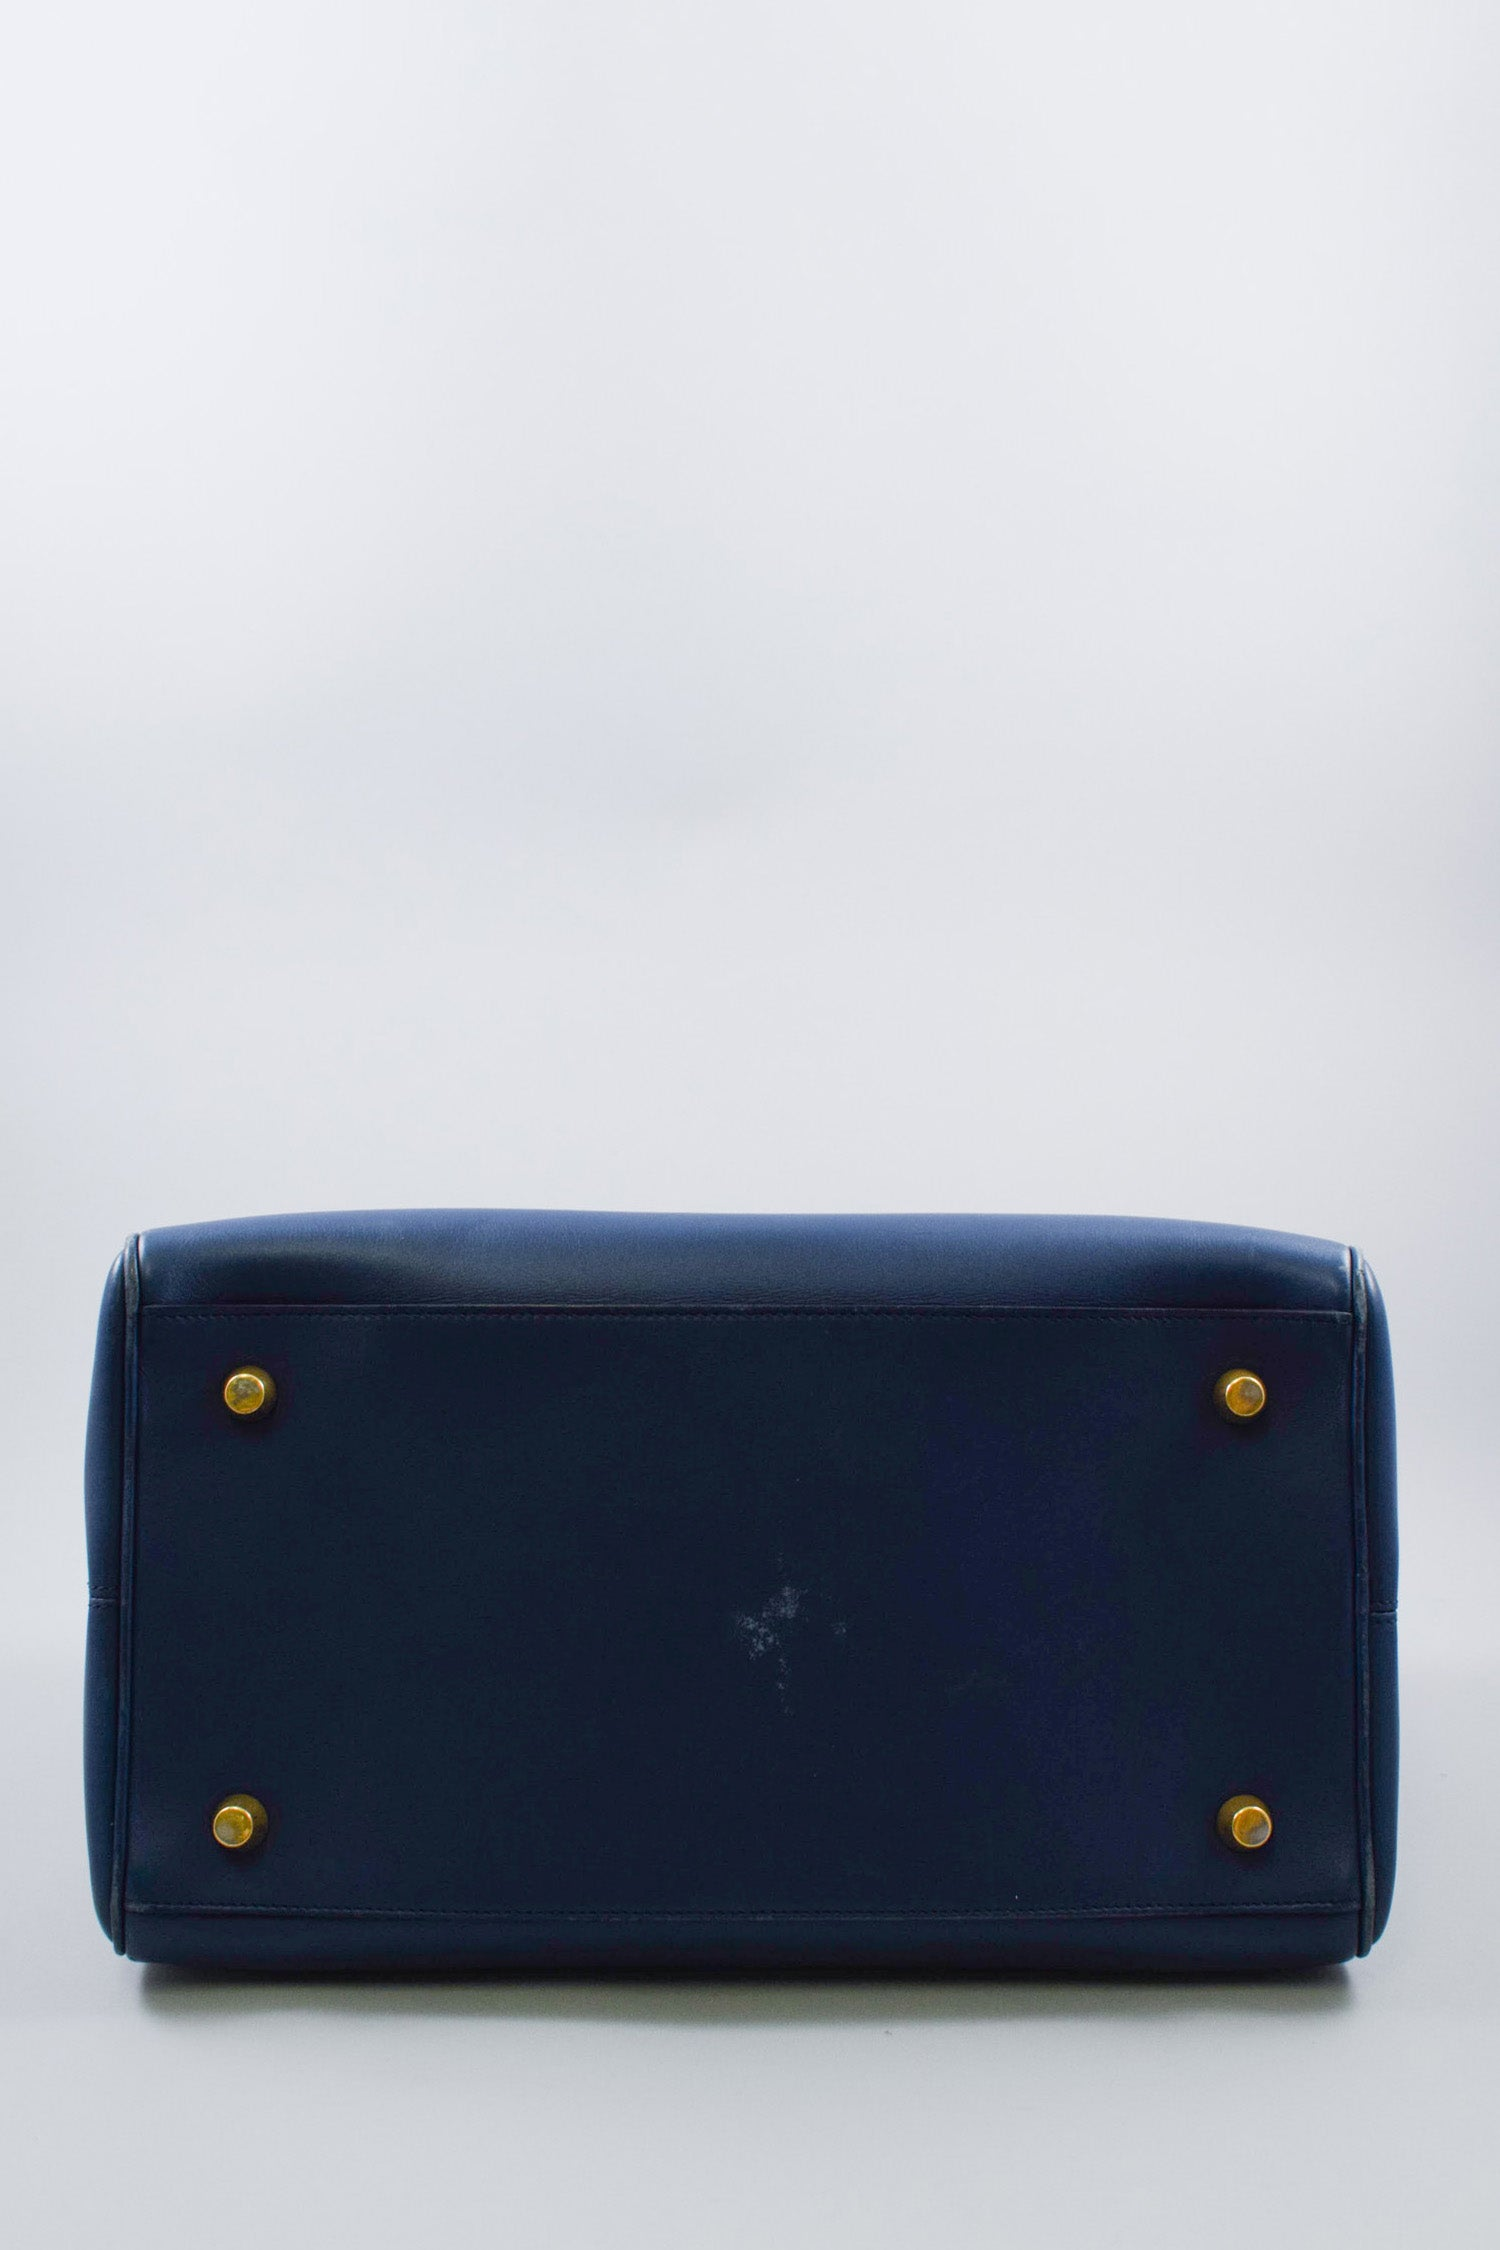 Celine Navy Blue Leather Top Handle Bag